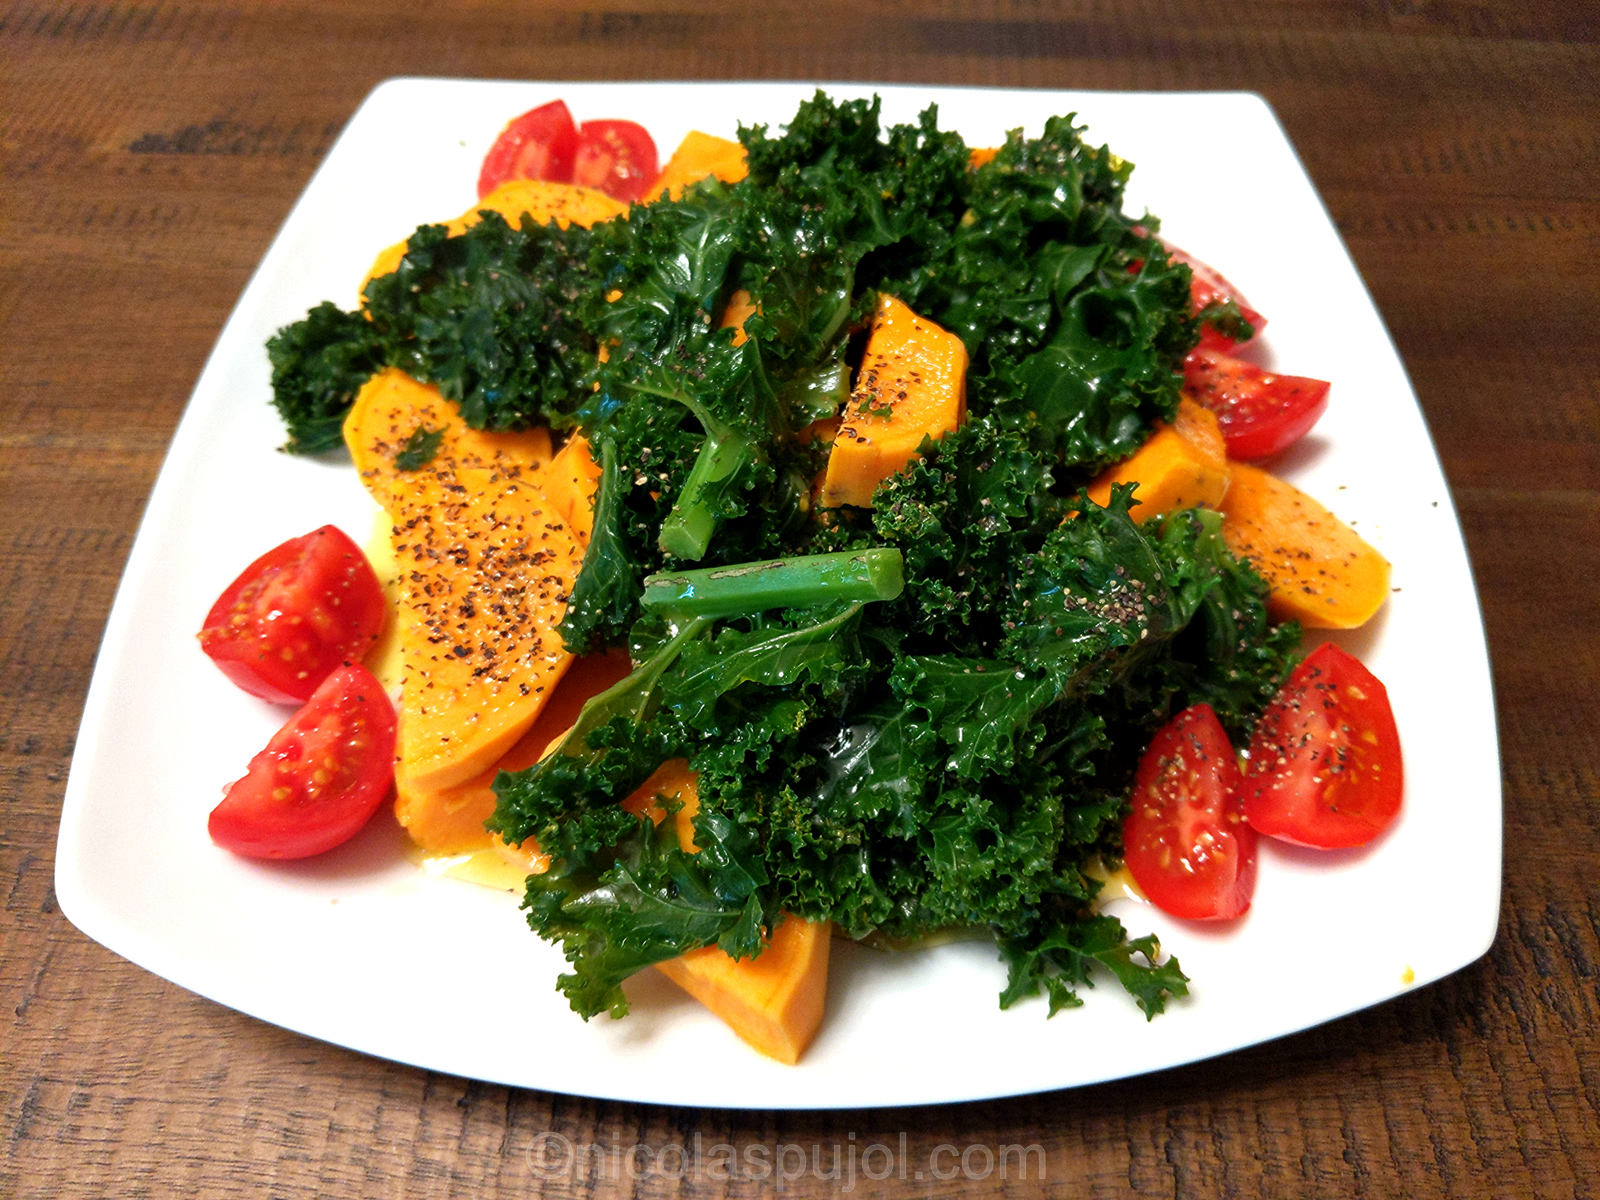 Vegan, paleo and gluten free kale sweet potato salad